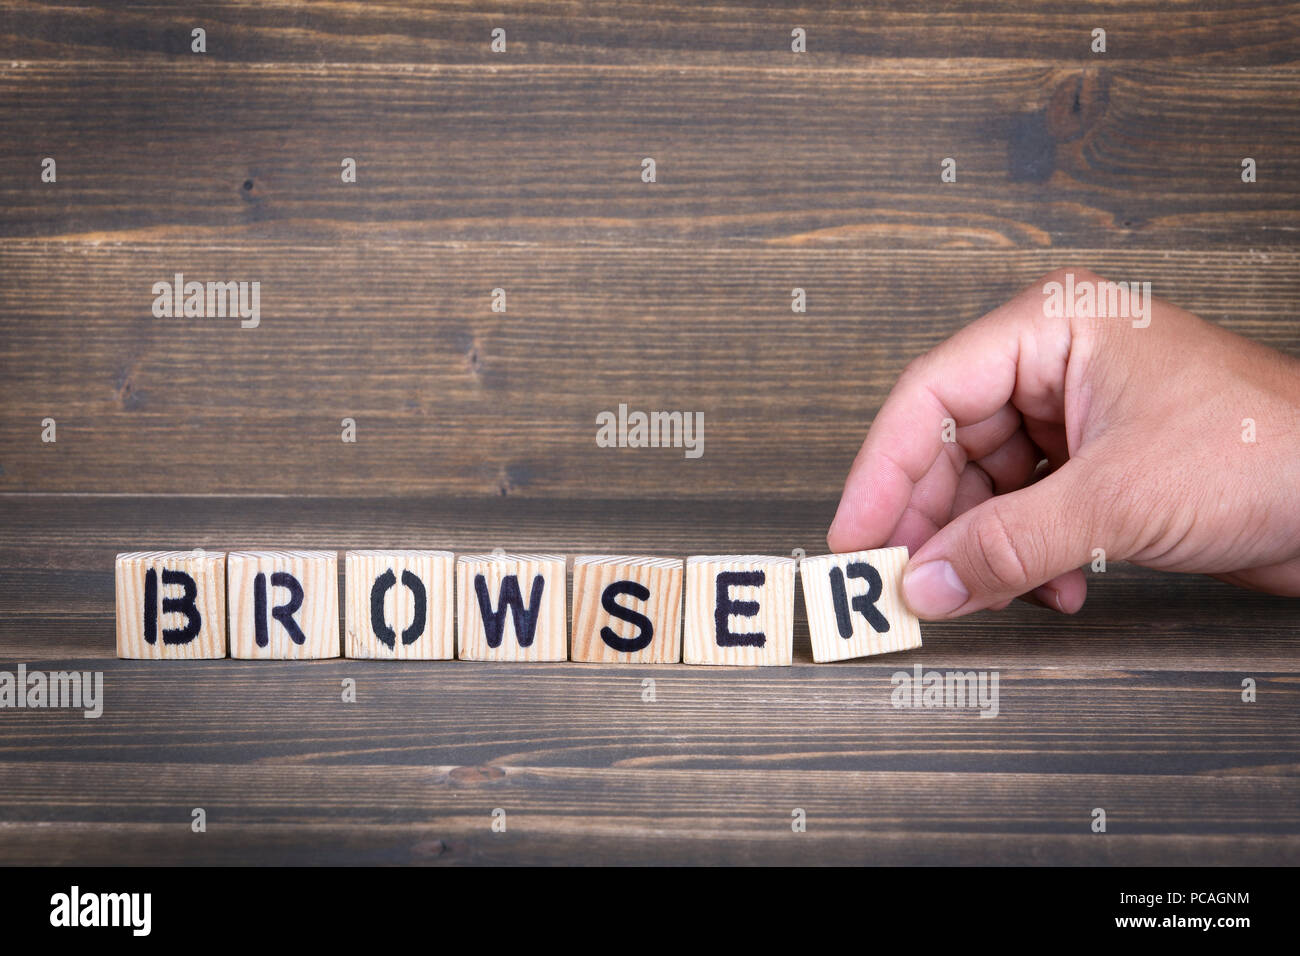 browser. wooden letters on the office desk - Stock Image